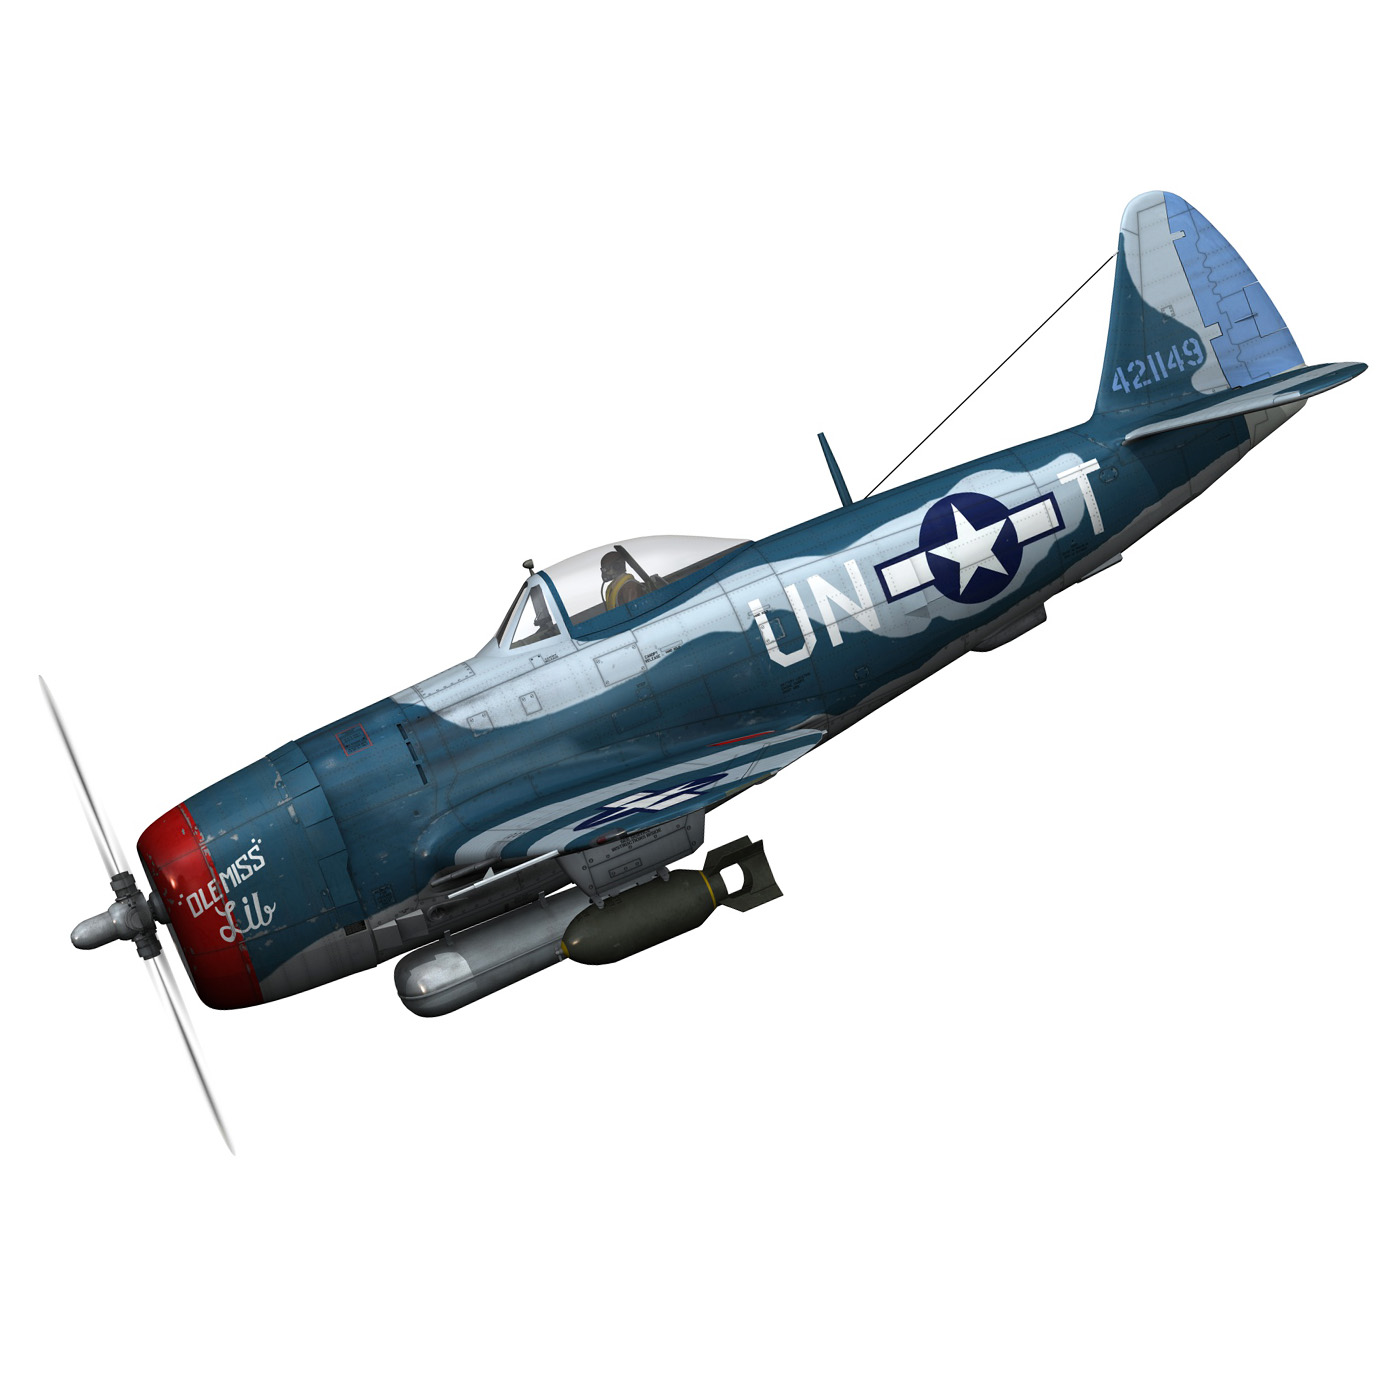 republic p-47 thunderbolt – ole miss lib 3d model fbx c4d lwo obj 274274